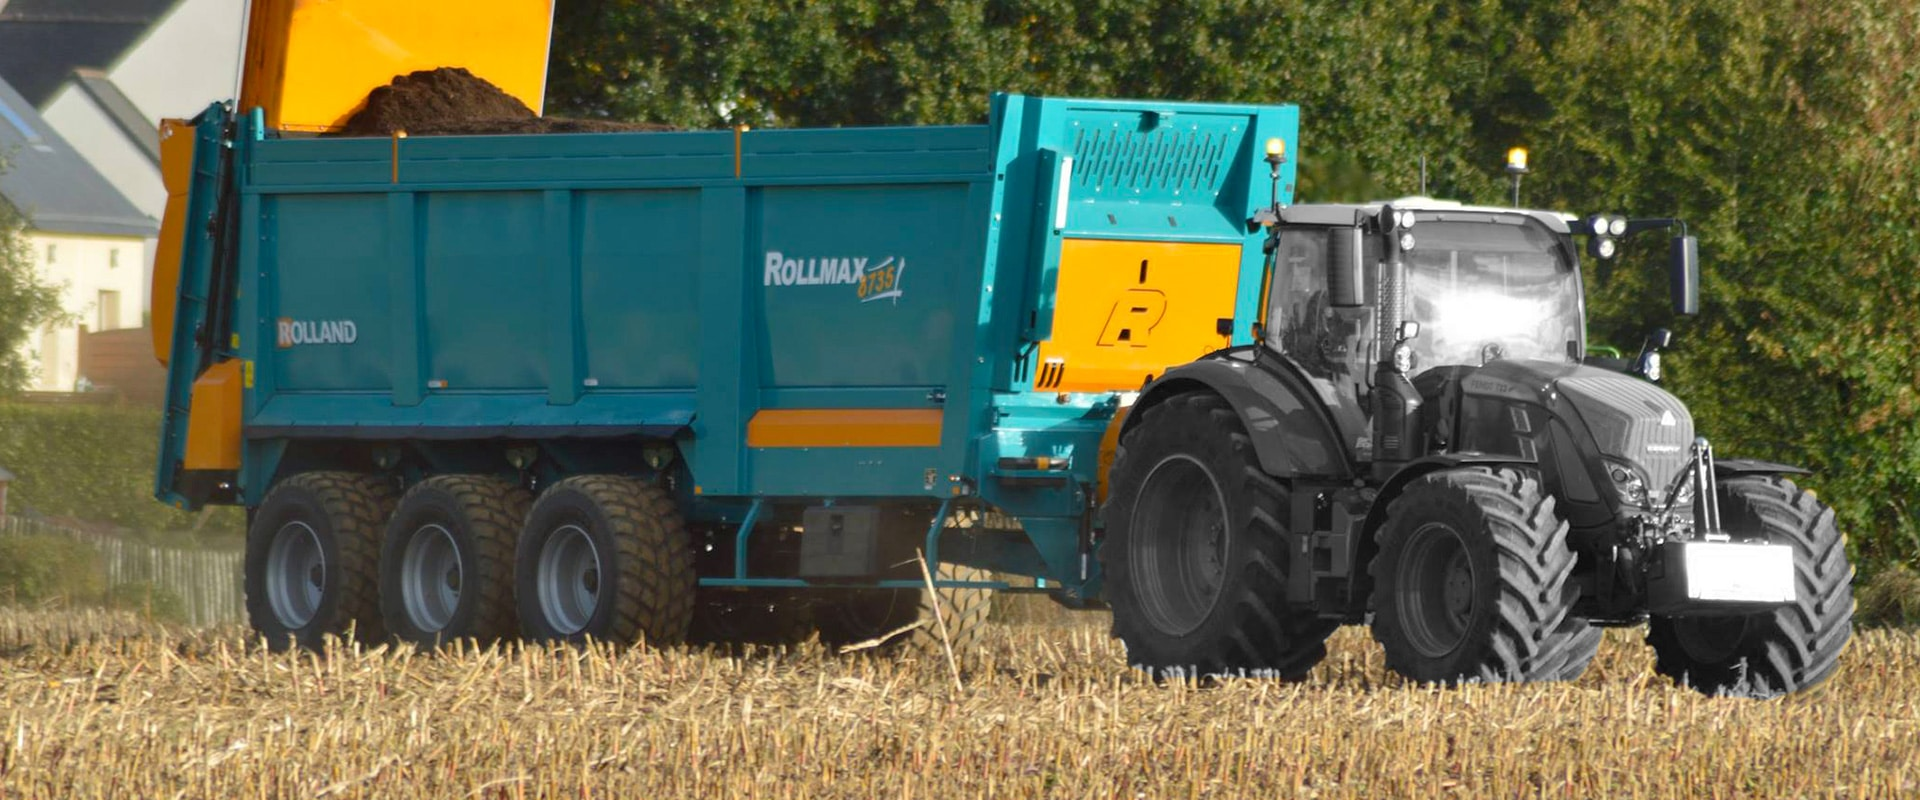 Rolland trailers